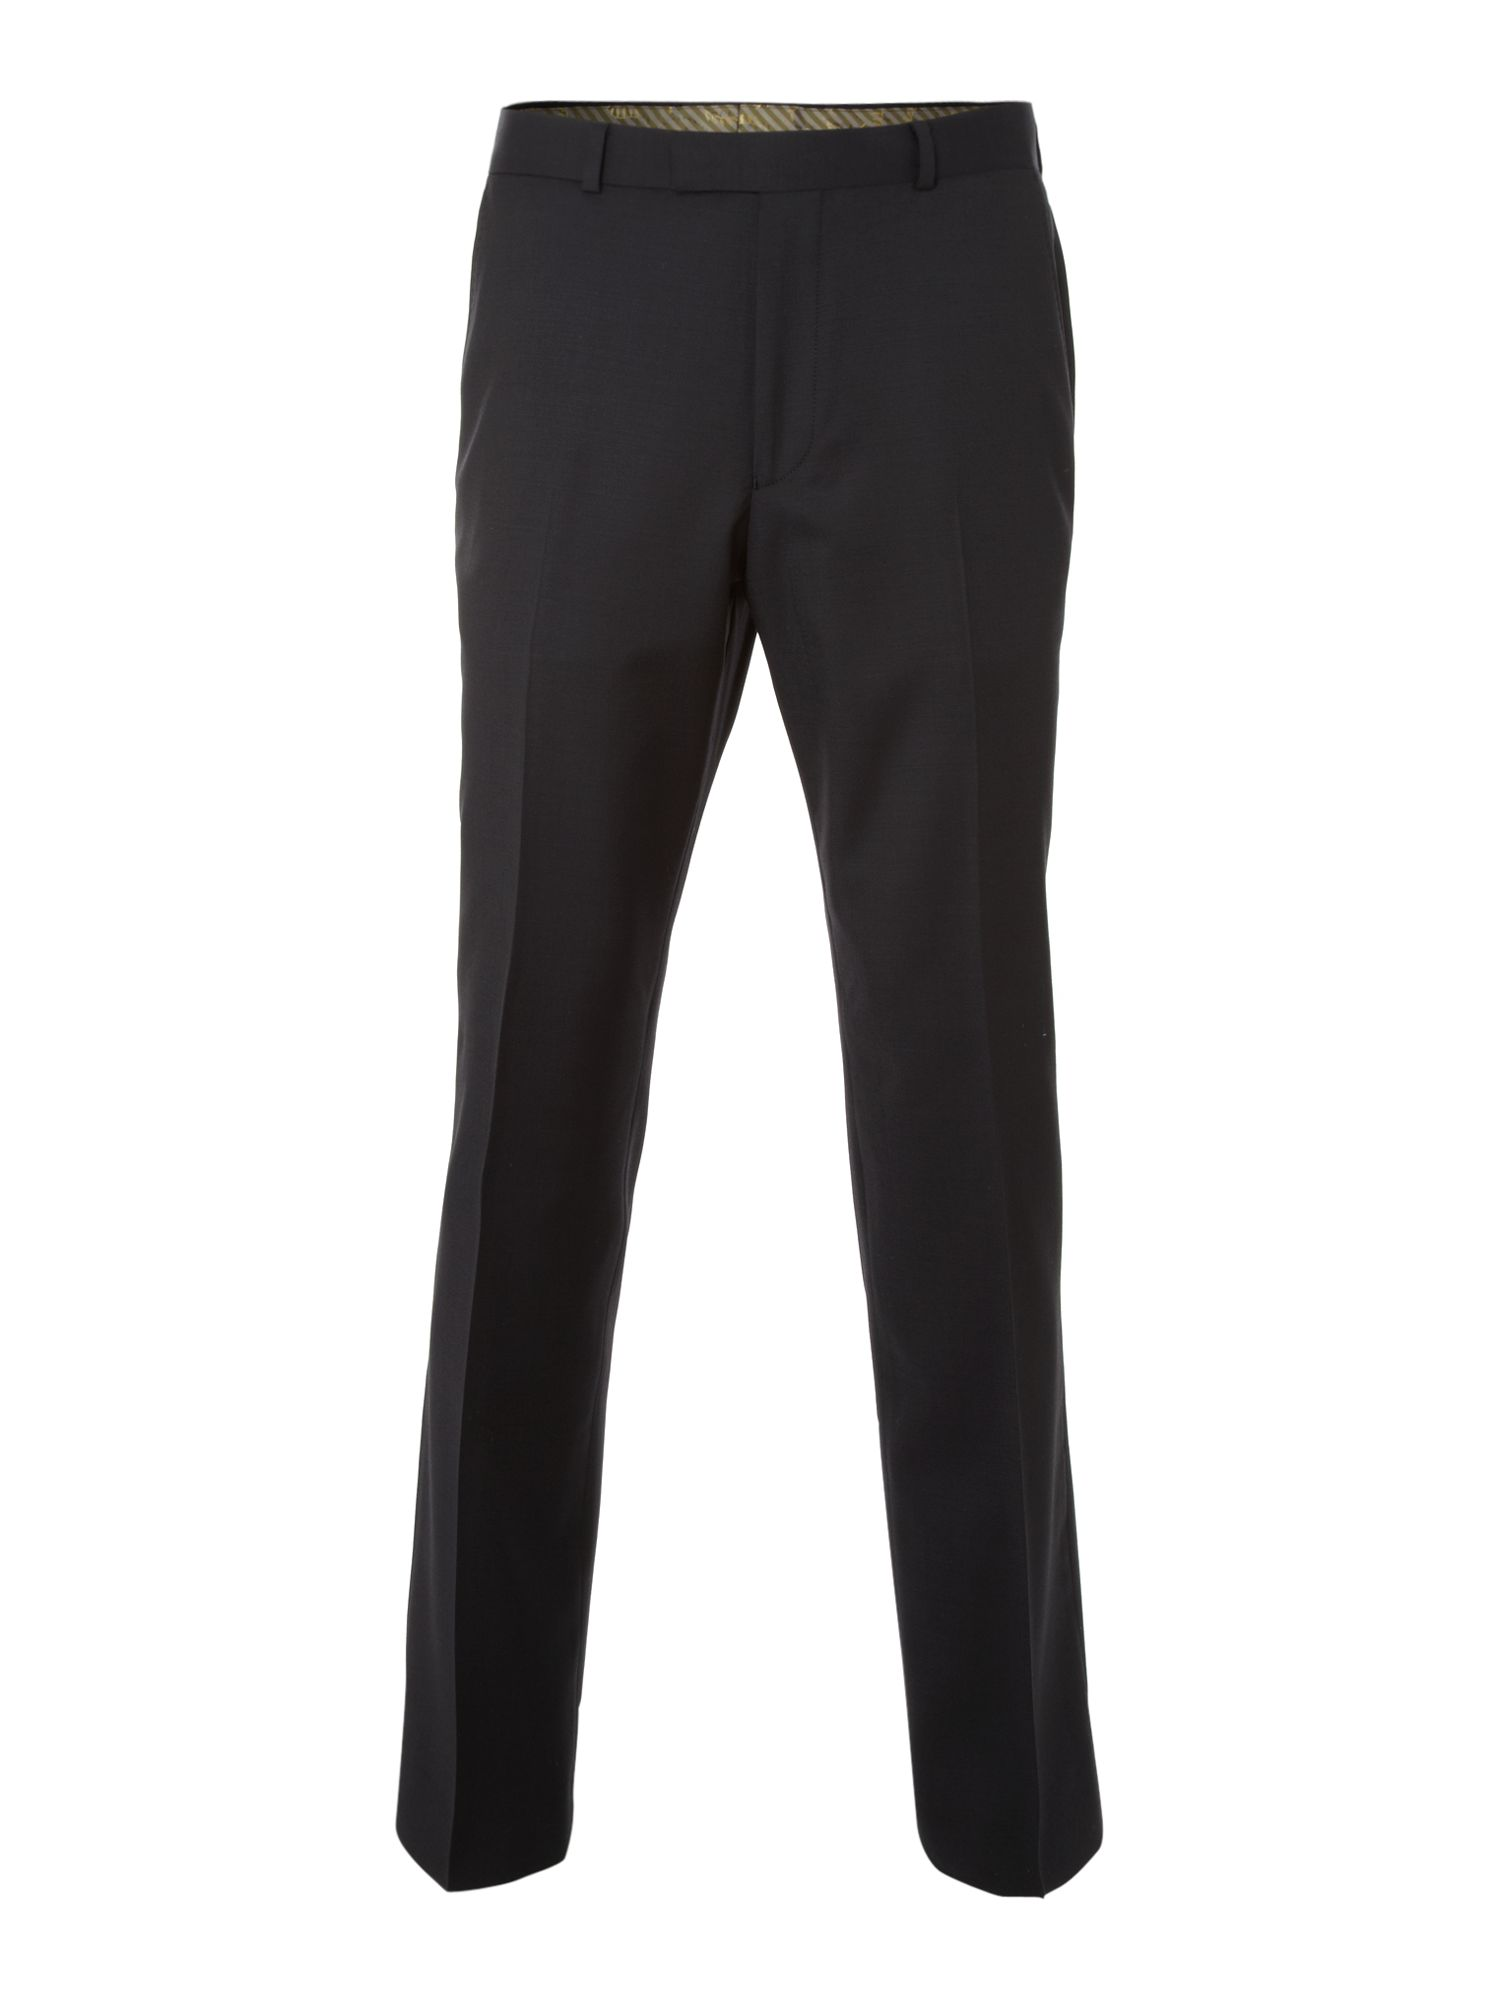 Carez the golden ewe regular fit suit trouser